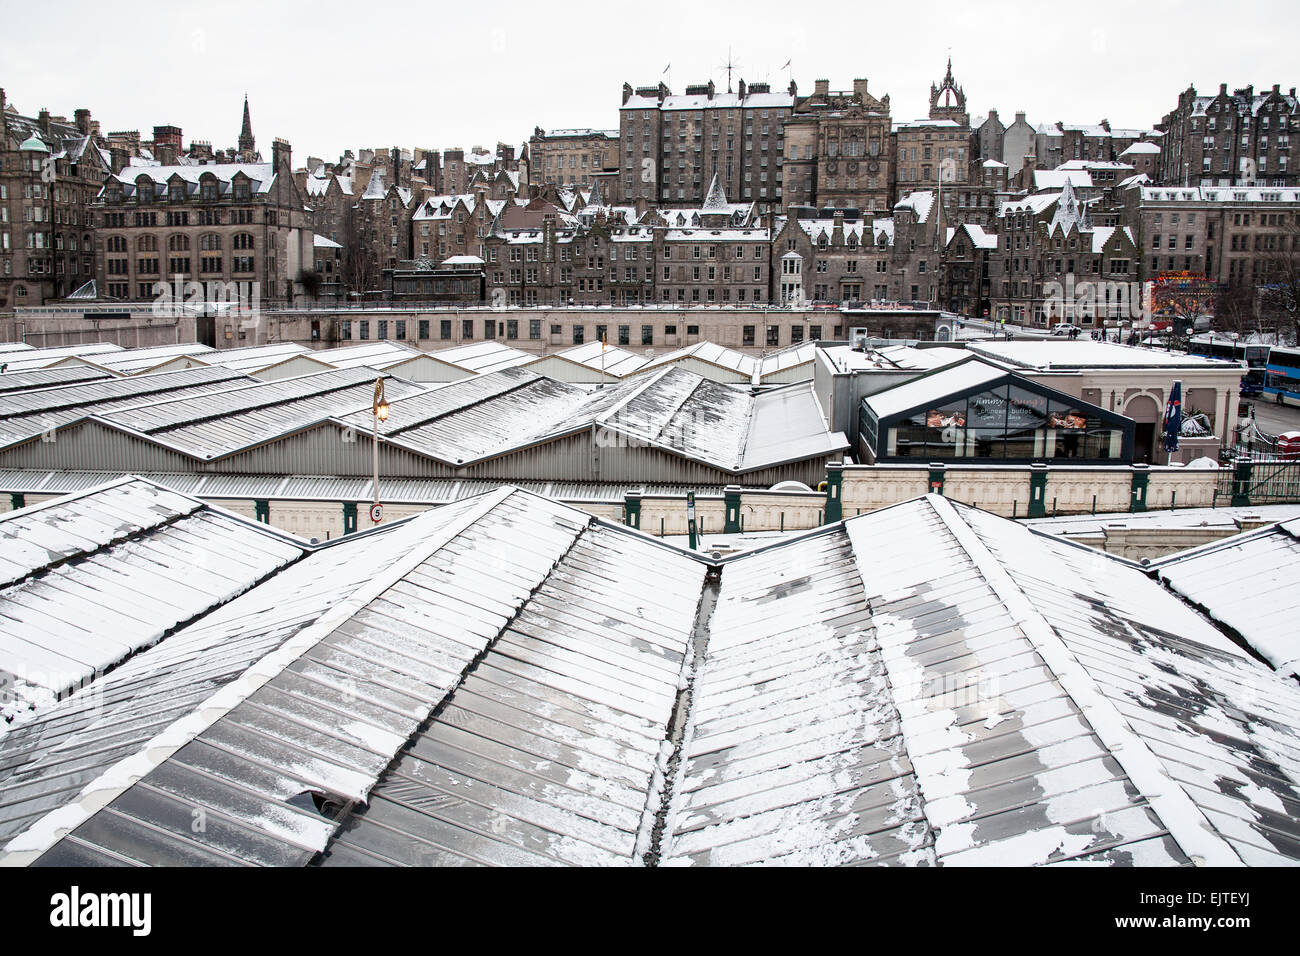 View towards Edinburgh's Old Town with the snow covered rooftop of Waverley Station in the foreground. - Stock Image